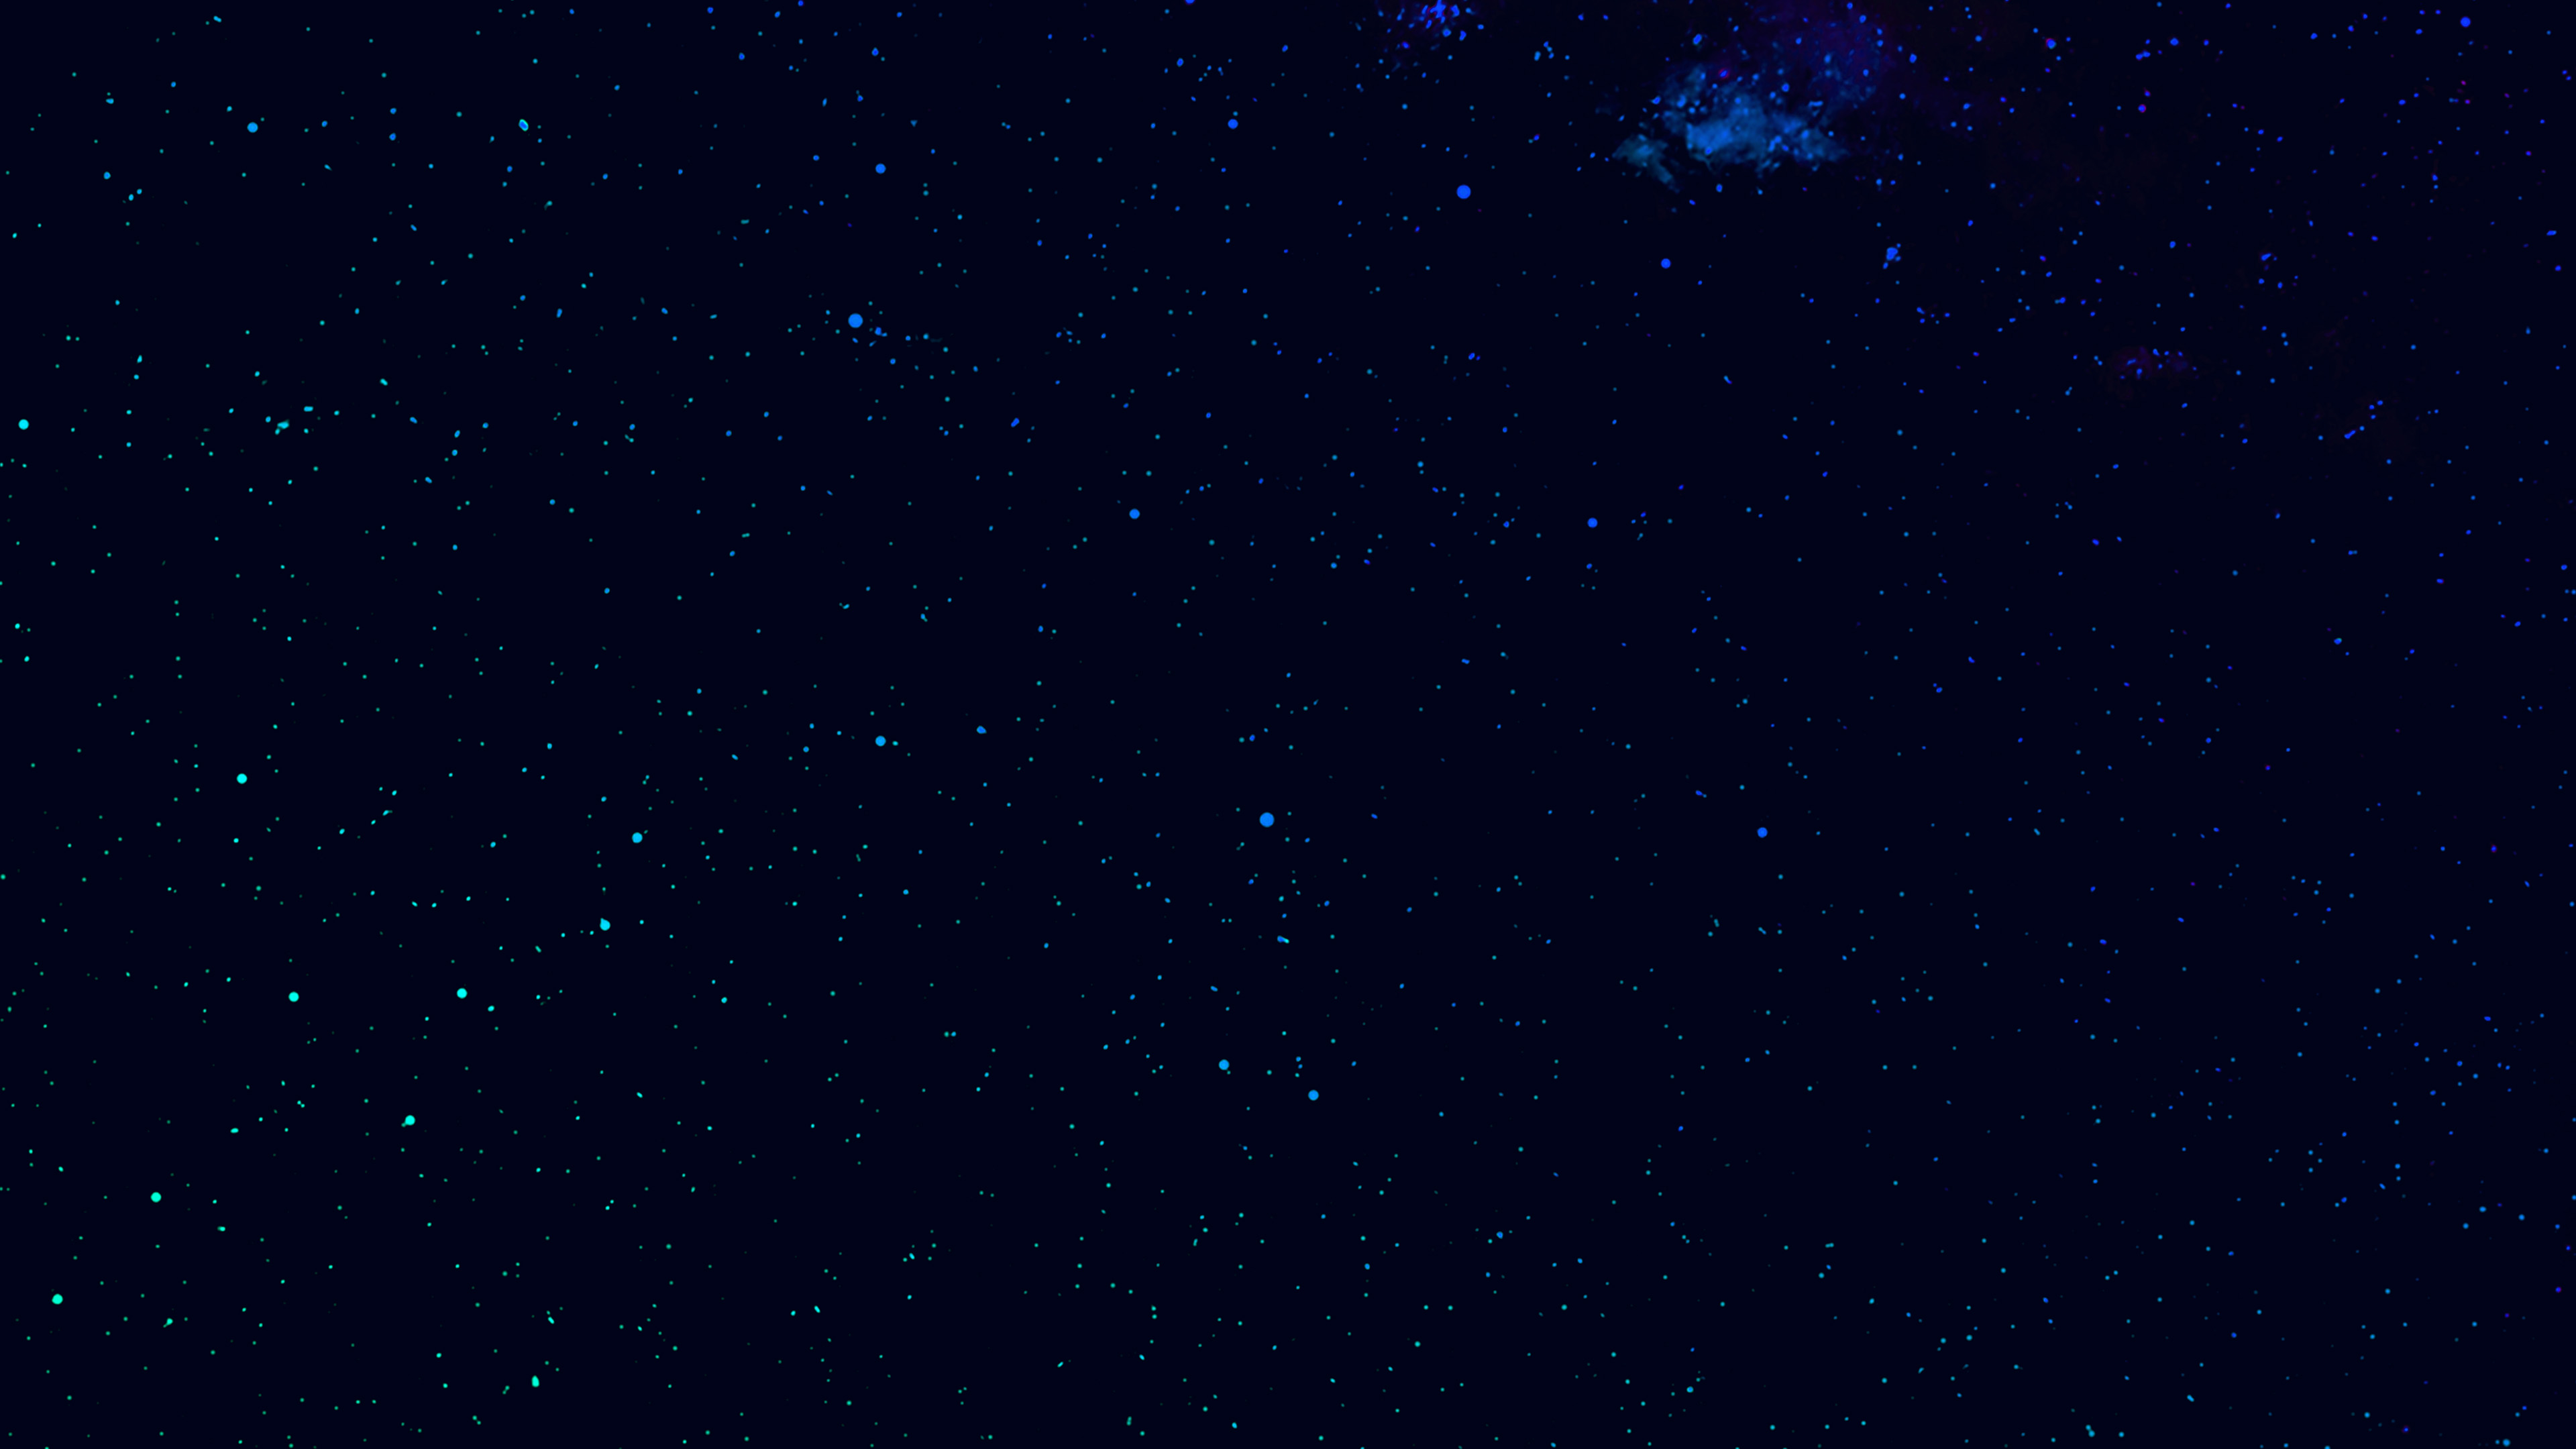 Mx26 Night Sky Star Space Galaxy S6 Nature Blue Wallpaper